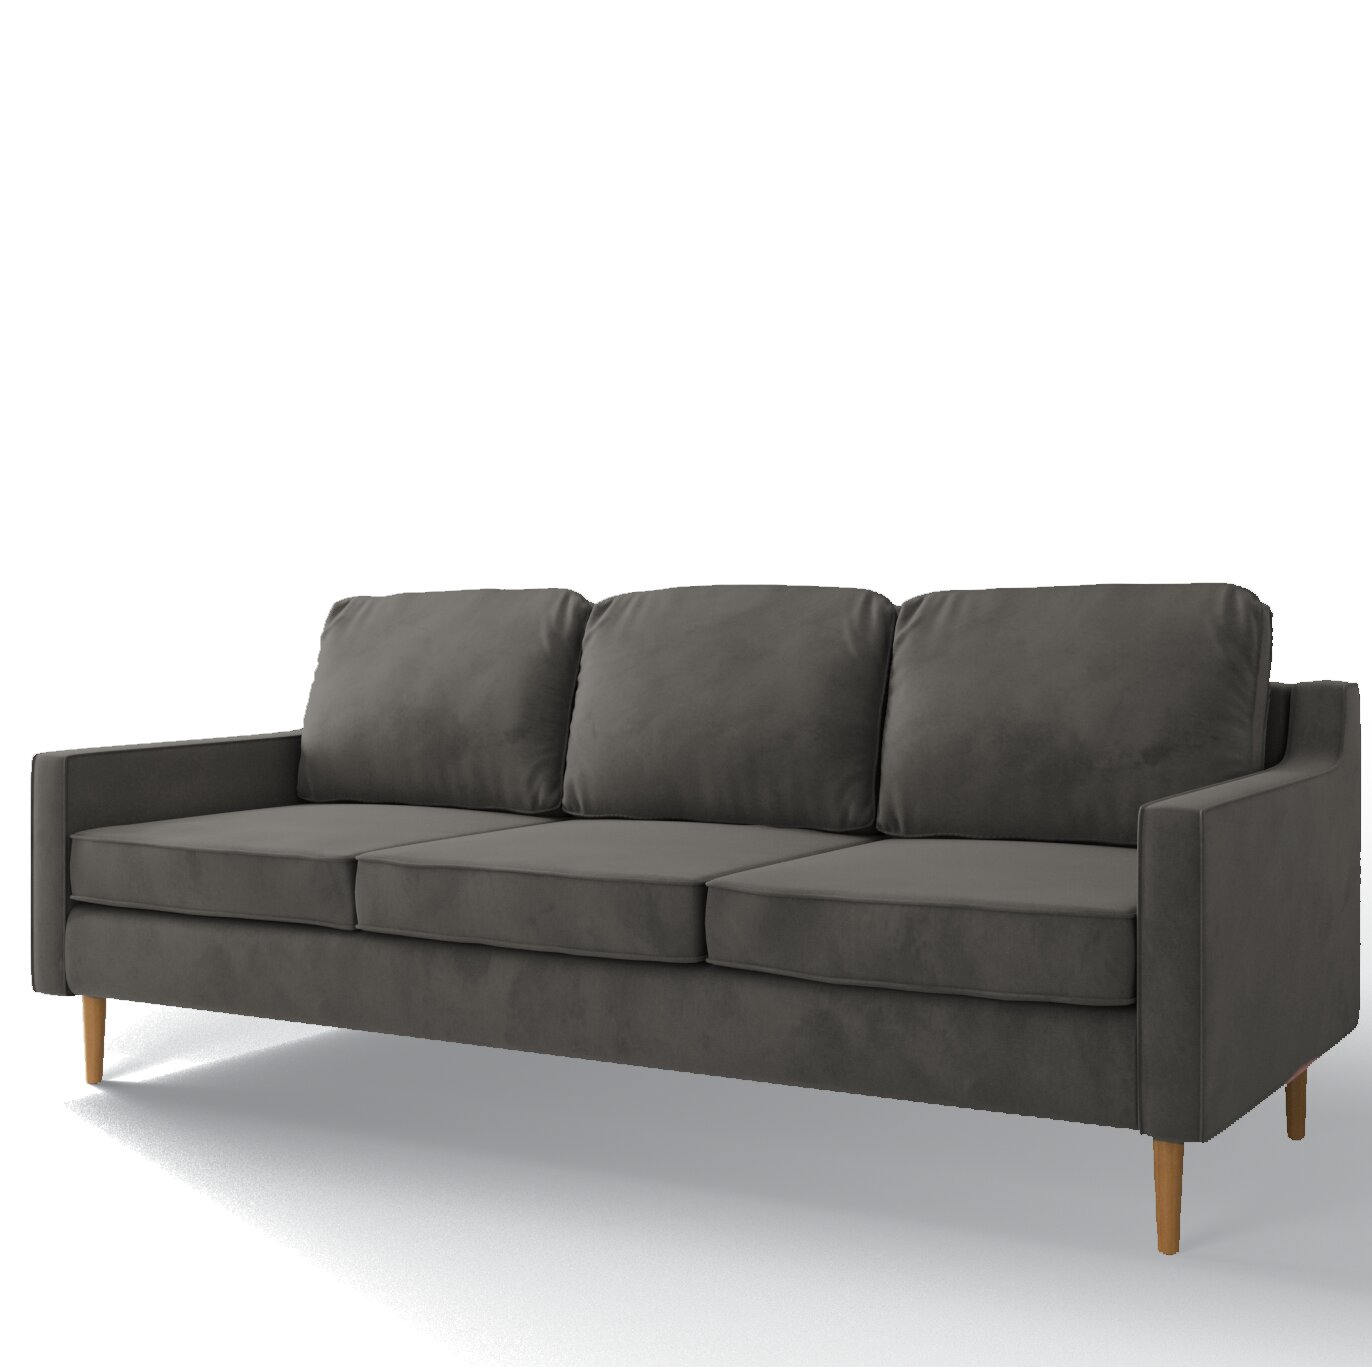 Mercury Row Bulkley Sofa U0026 Reviews | Wayfair